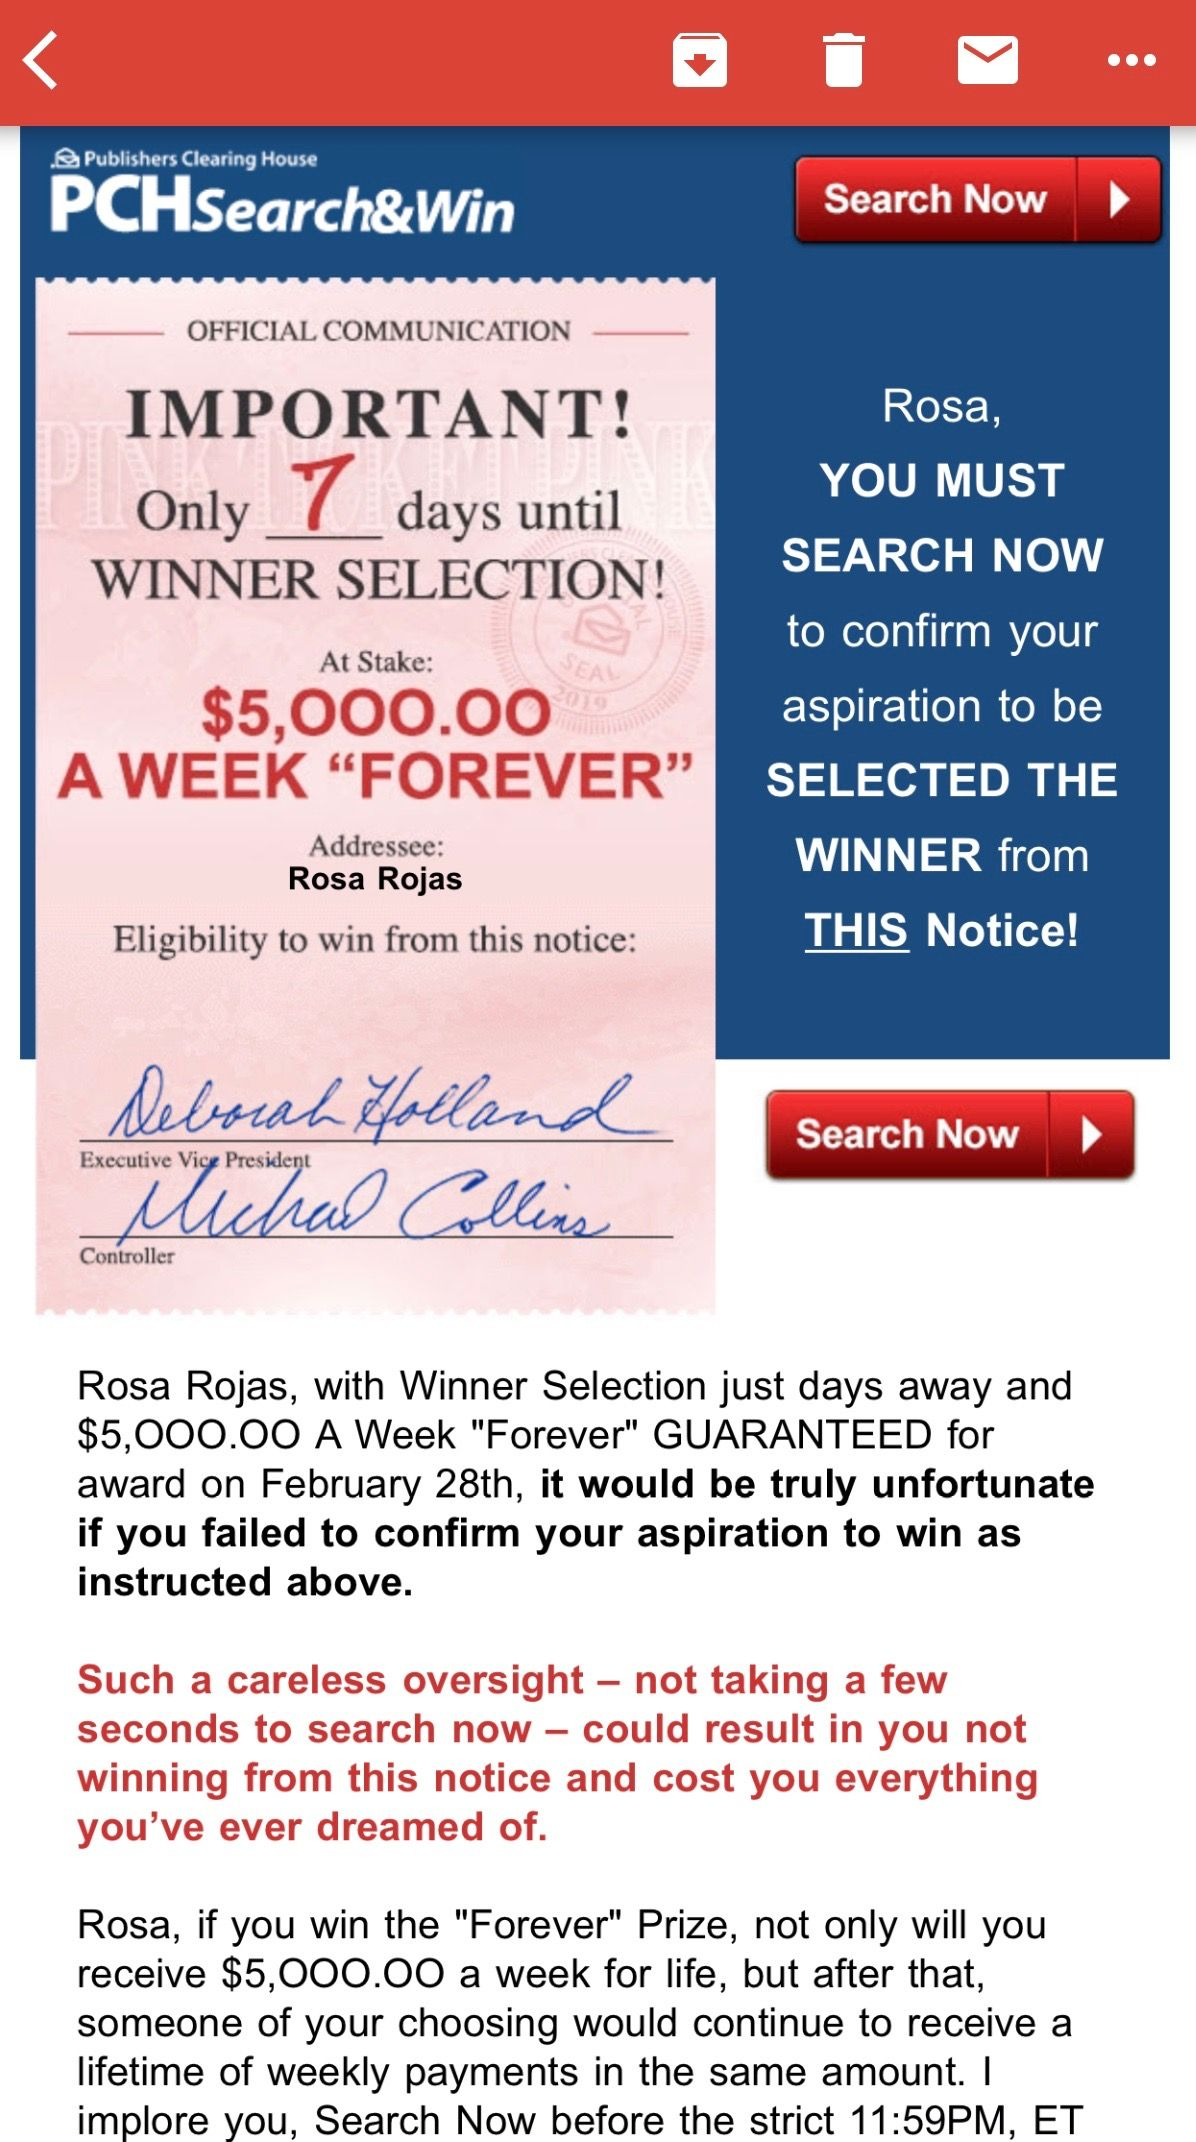 PCHSEARCH&WIN I RRojas Claim My OFFICIAL COMMUNICATION Eligibility